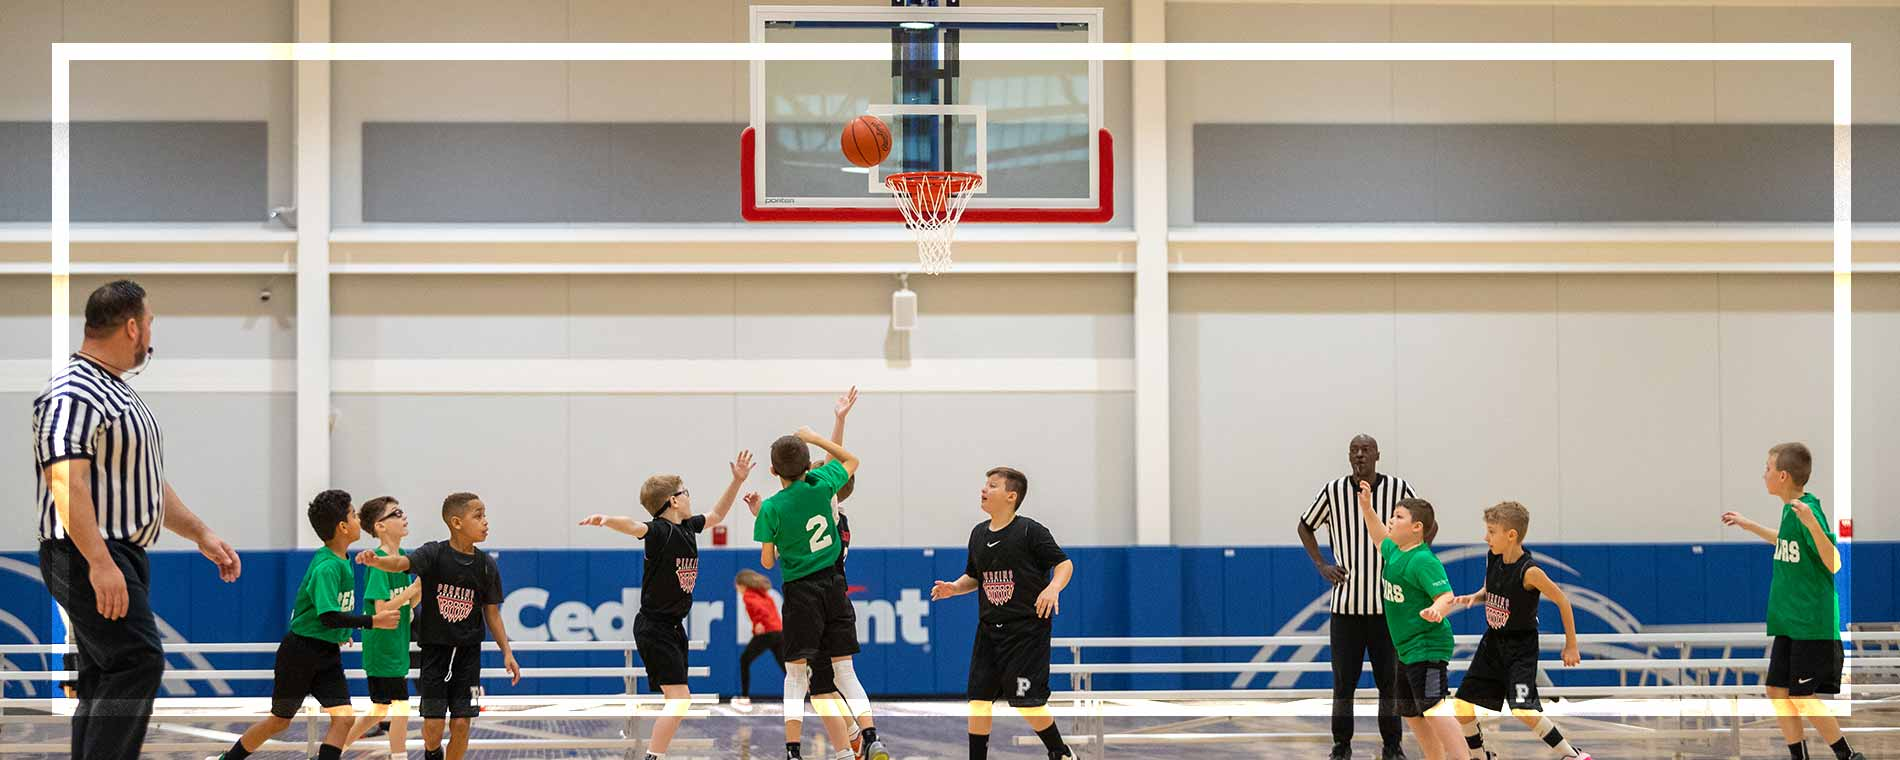 Youth Basketball League 3